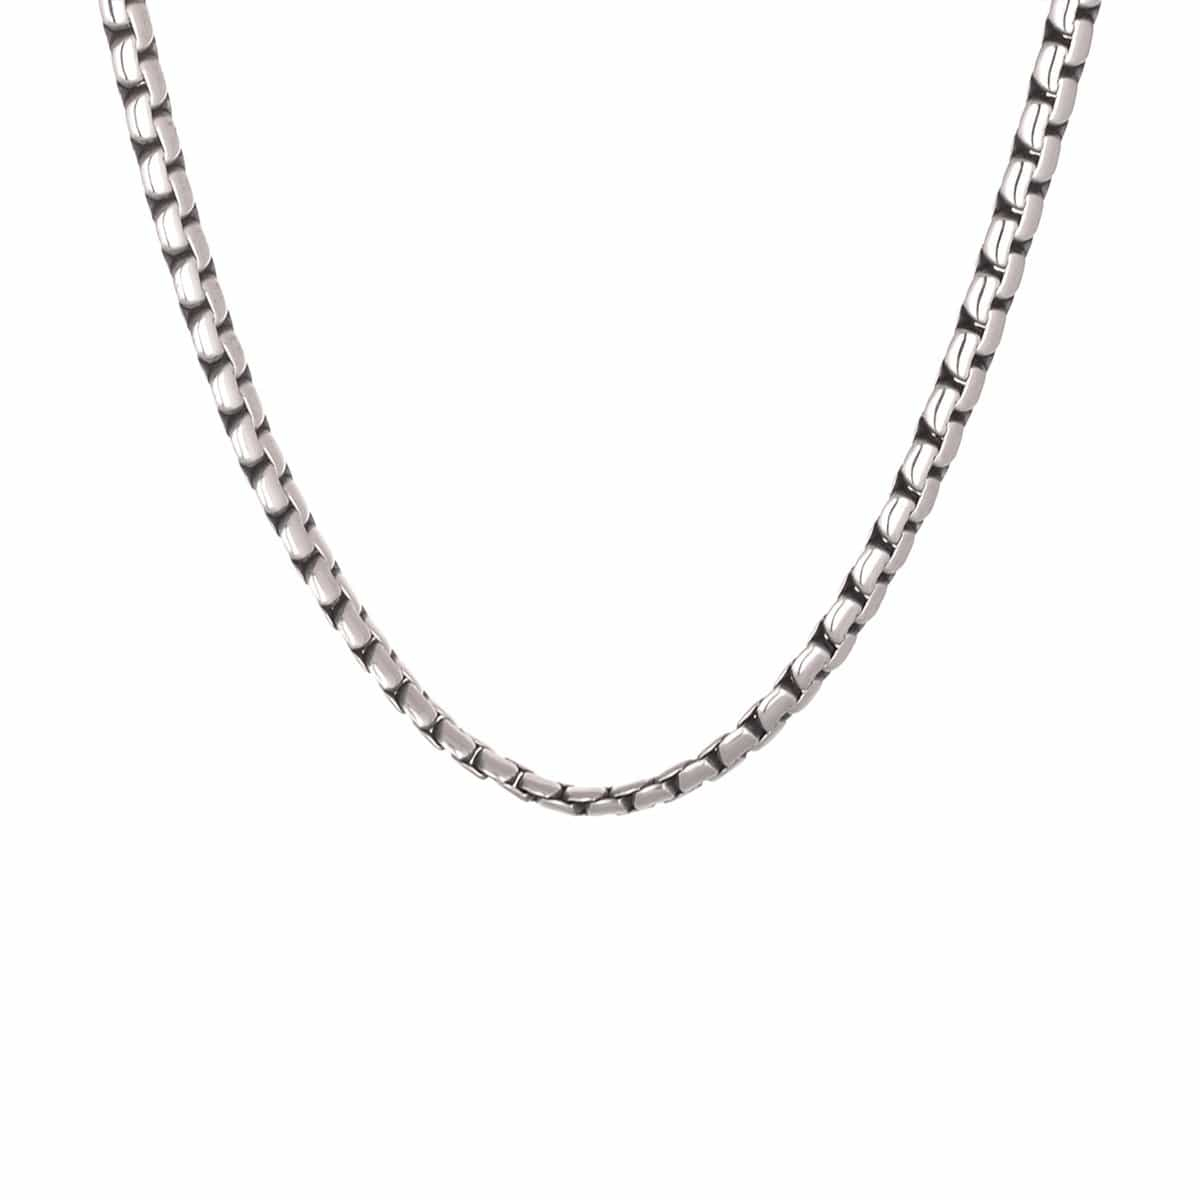 Darkened Silver Stainless Steel 5mm Flat Square Chain Chains